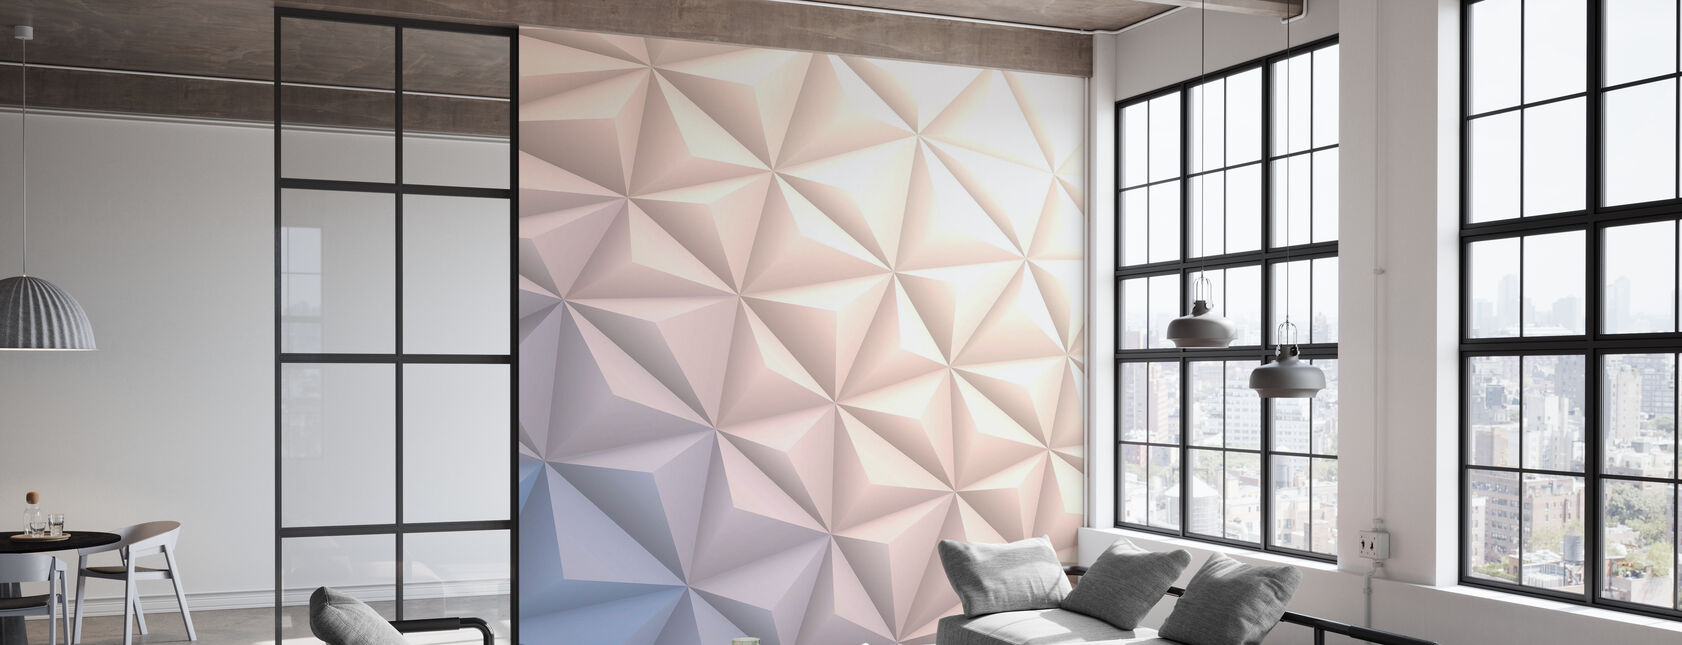 Geometric White - Wallpaper - Office